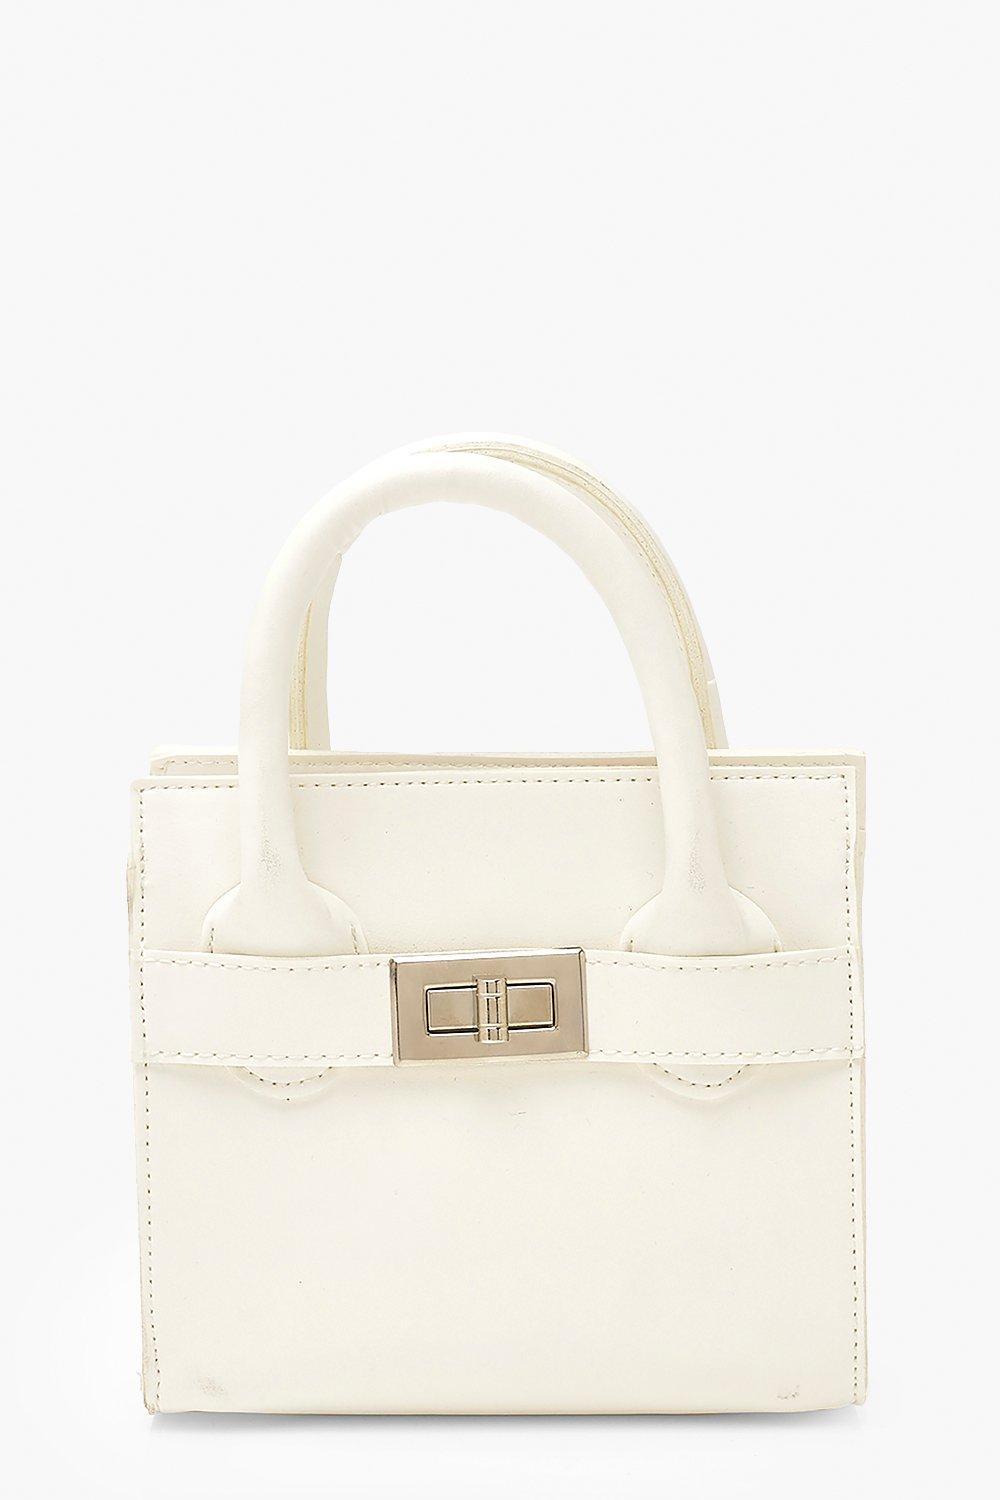 boohoo Womens Smooth Pu Lock Detail Bag & Chain - White - One Size, White